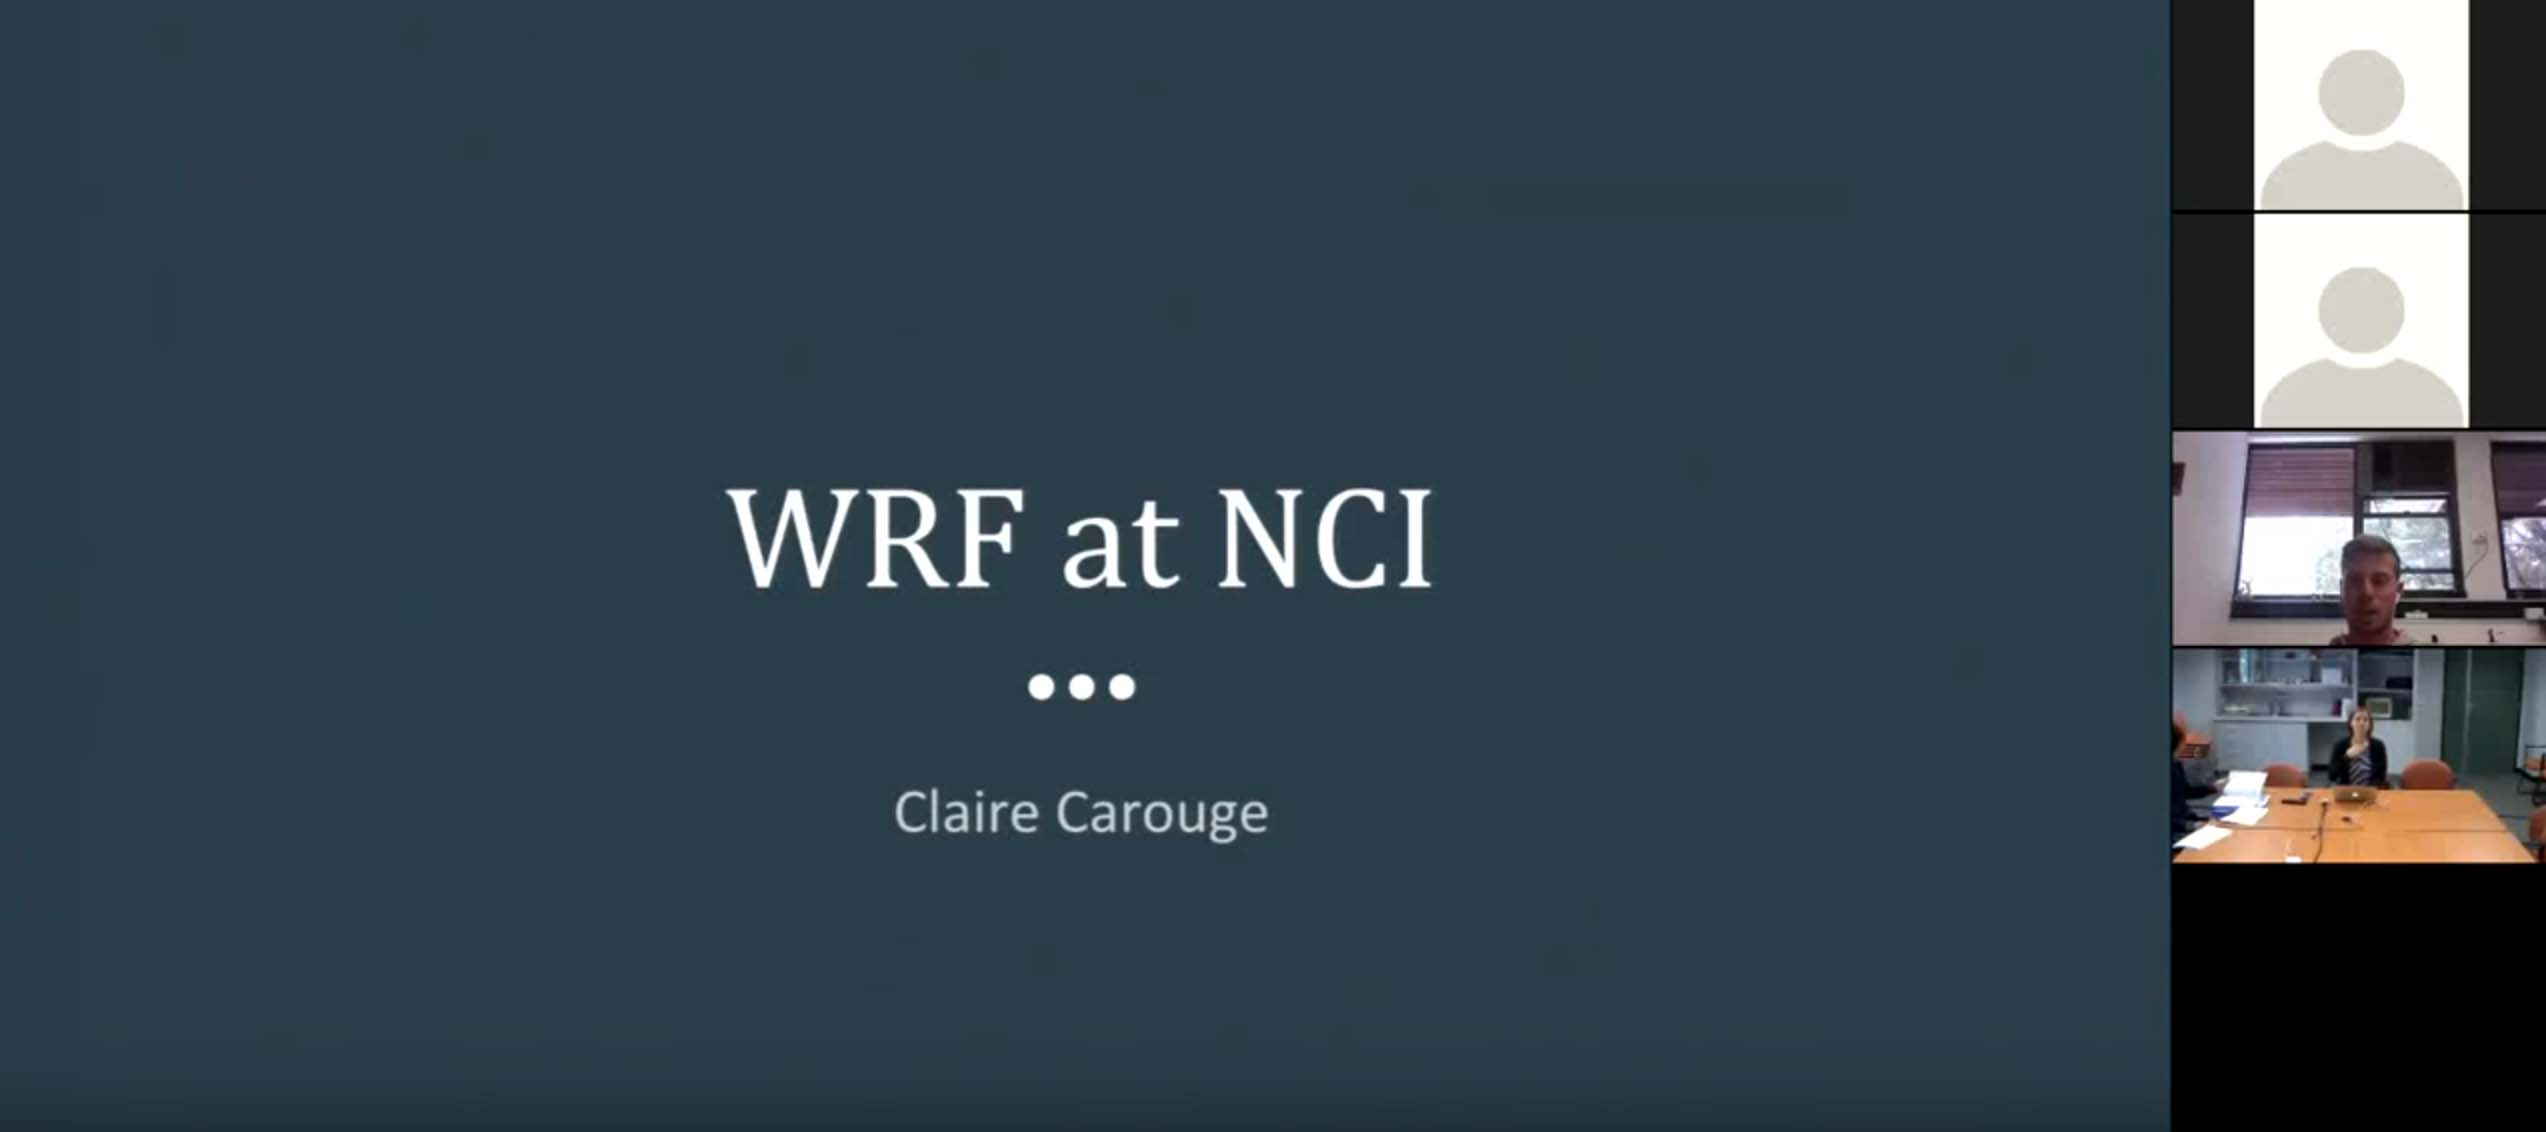 CMS training - starting with WRF at NCI | CLEX